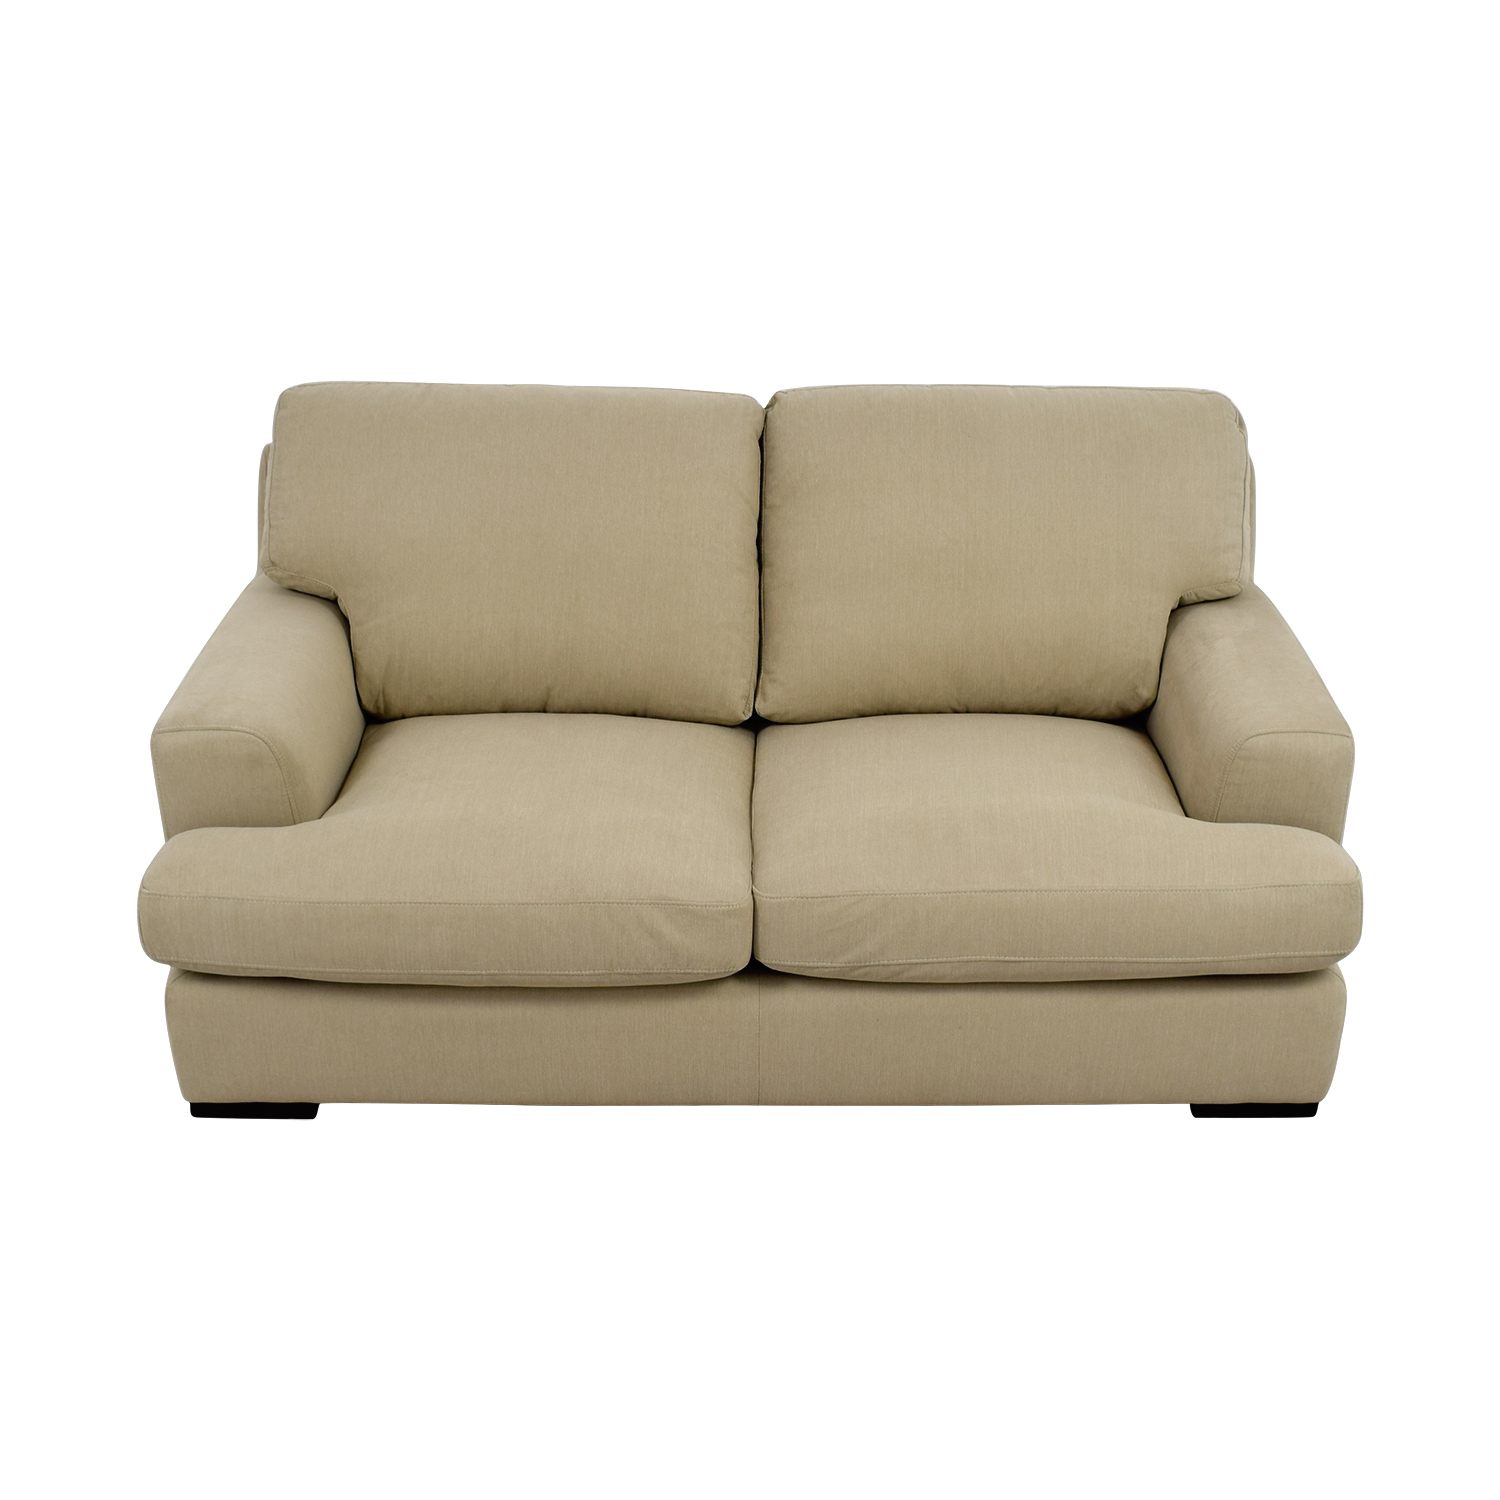 Stone & Beam Stone & Beam Lauren Down Filled Overstuffed Fawn Loveseat on sale